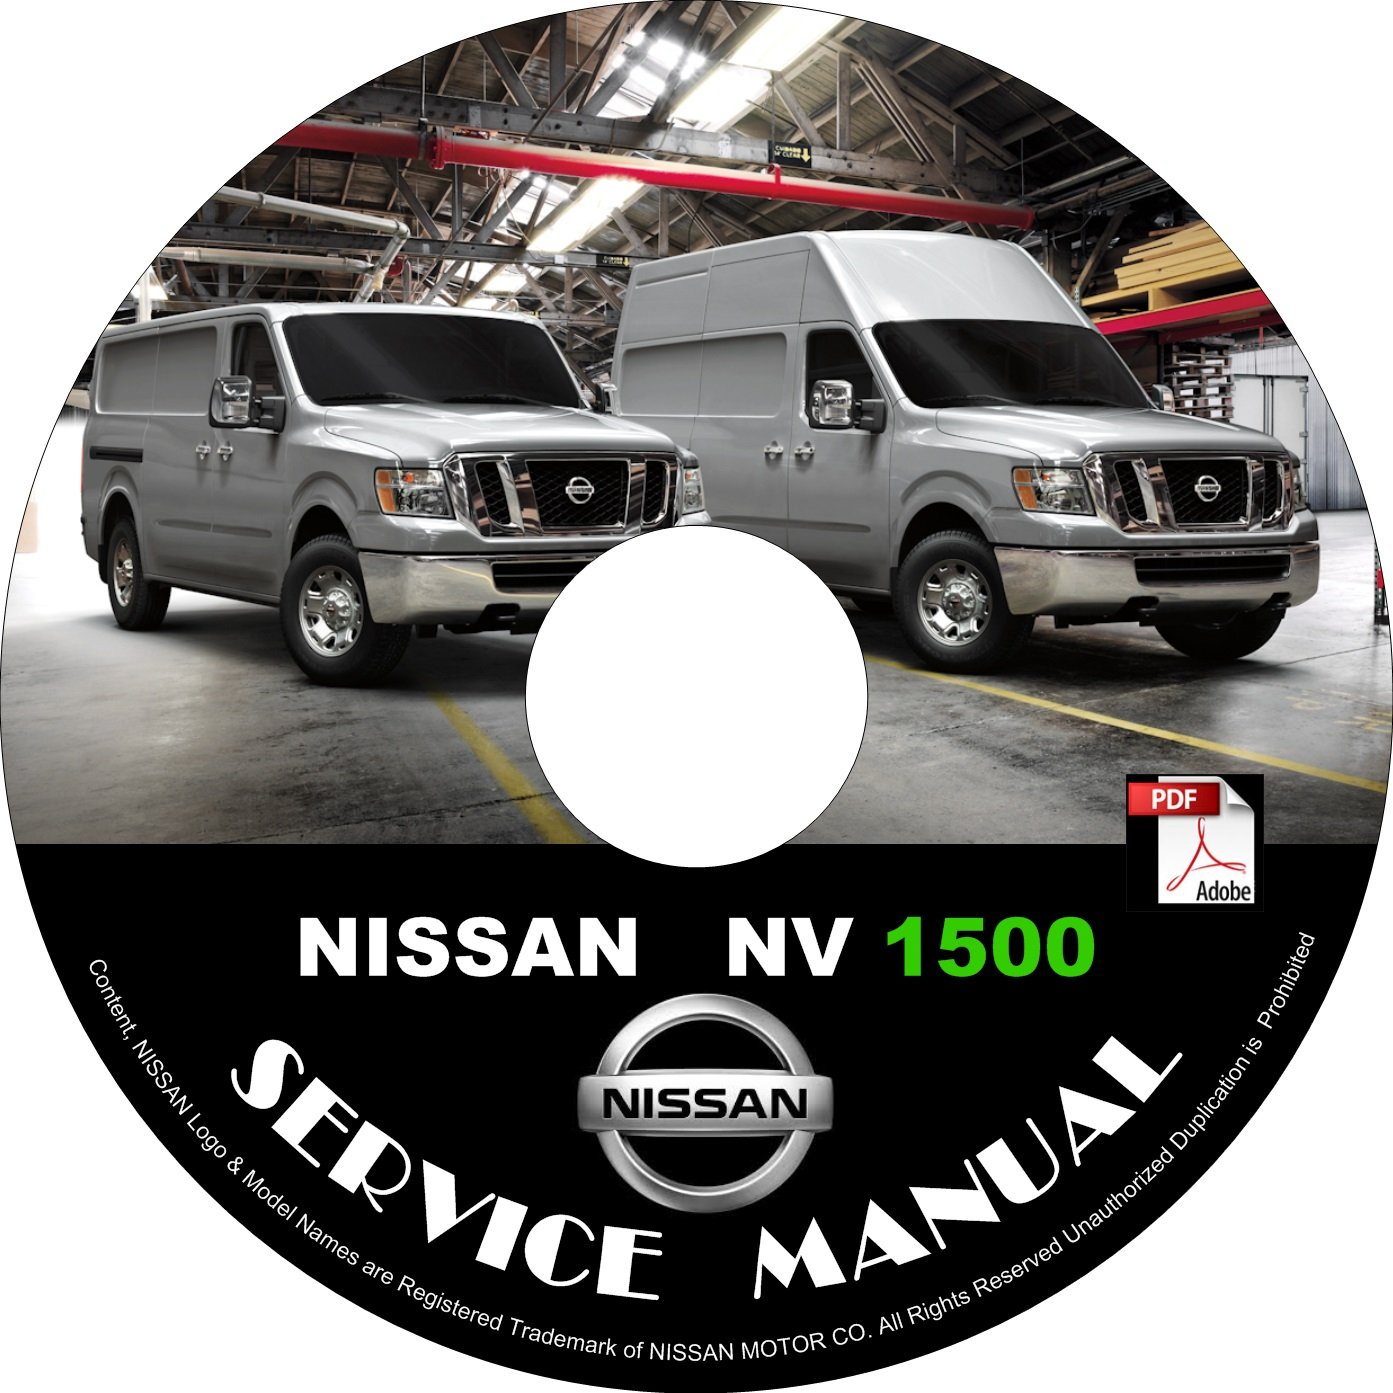 2013 Nissan NV 1500 Factory Service Repair Shop Manual on CD Fix Repair Rebuild '13 Workshop Guide